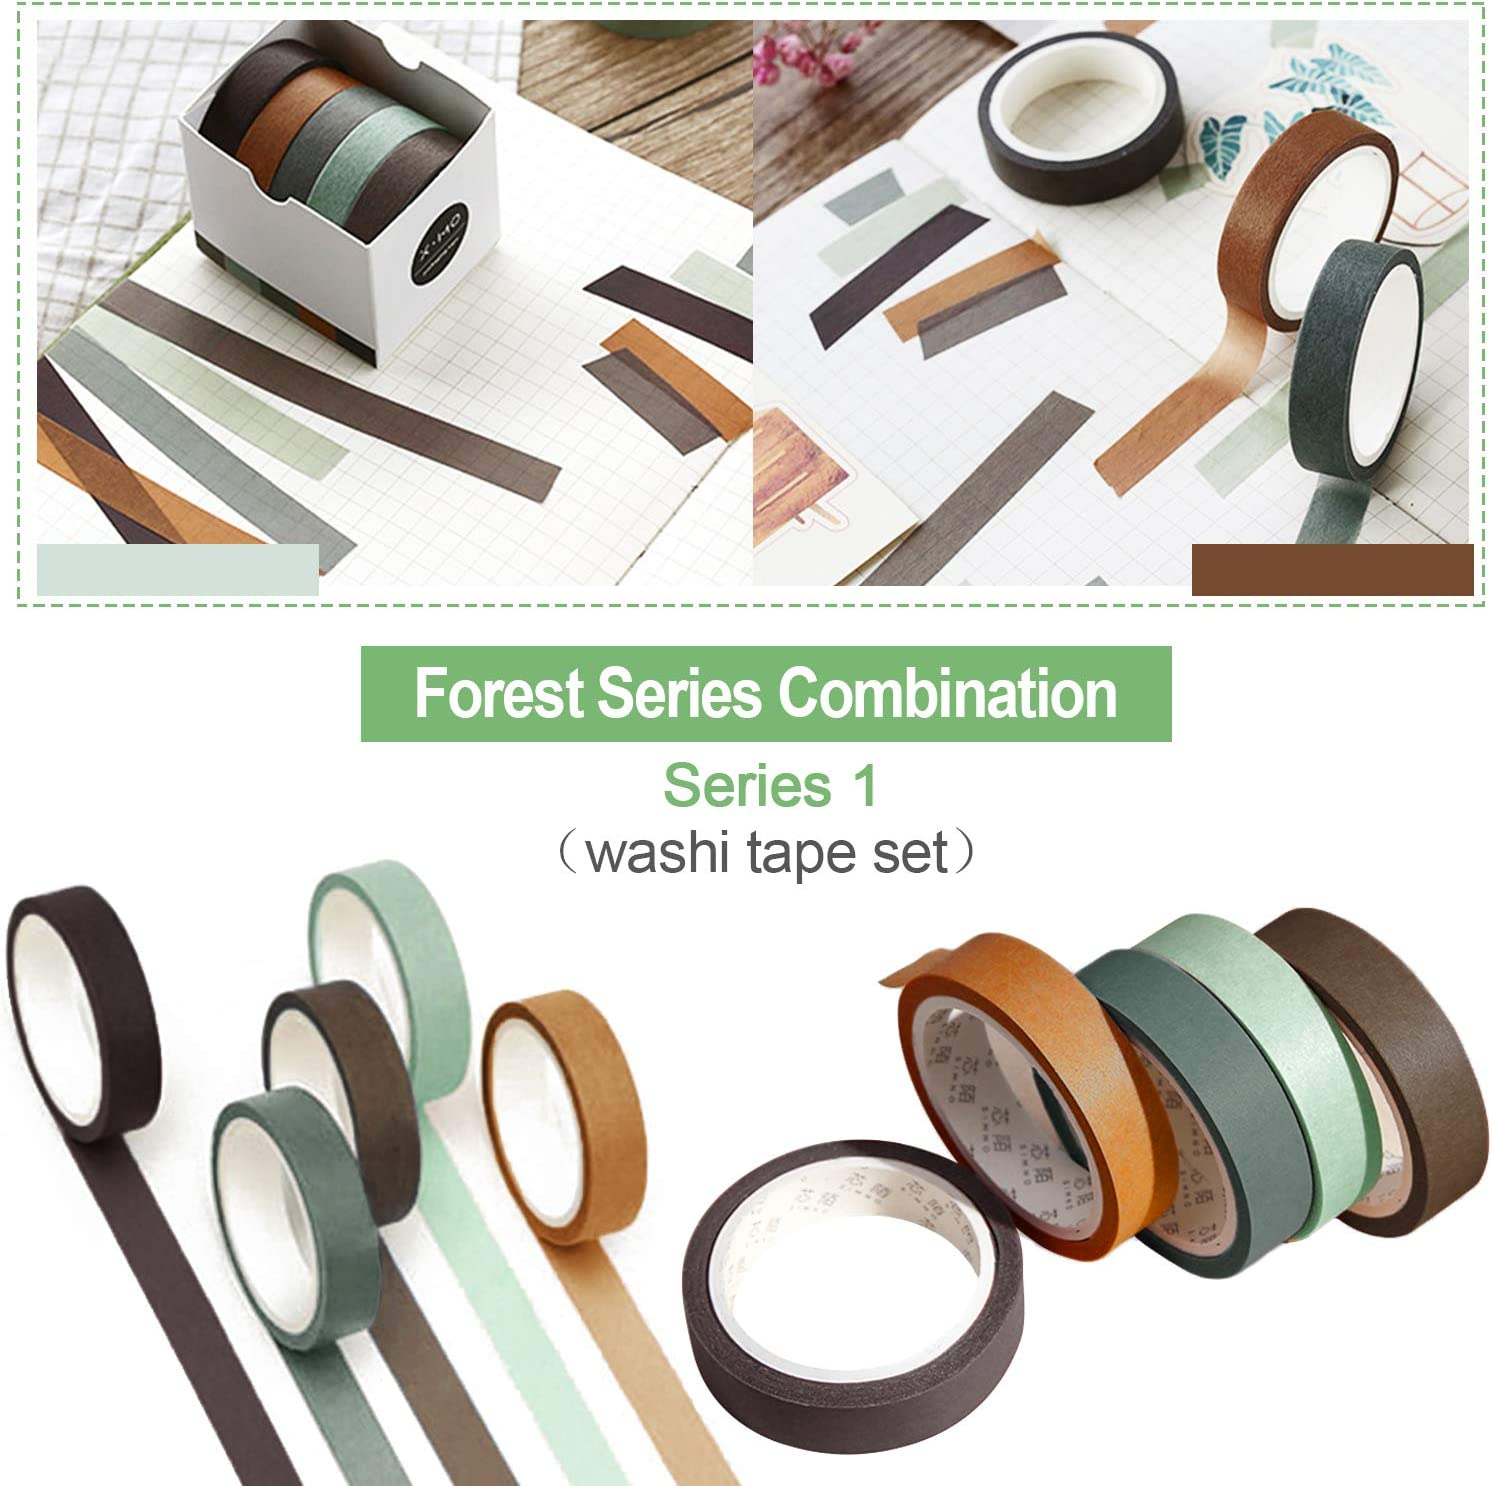 3 Boxes Solid Color Washi Tapes EBANKU Colorful Masking Tape Set Labeling Craft Tape for DIY Decorations Scrapbooking Supplies Kids Teachers /& Painters 5 Rolls in a Box